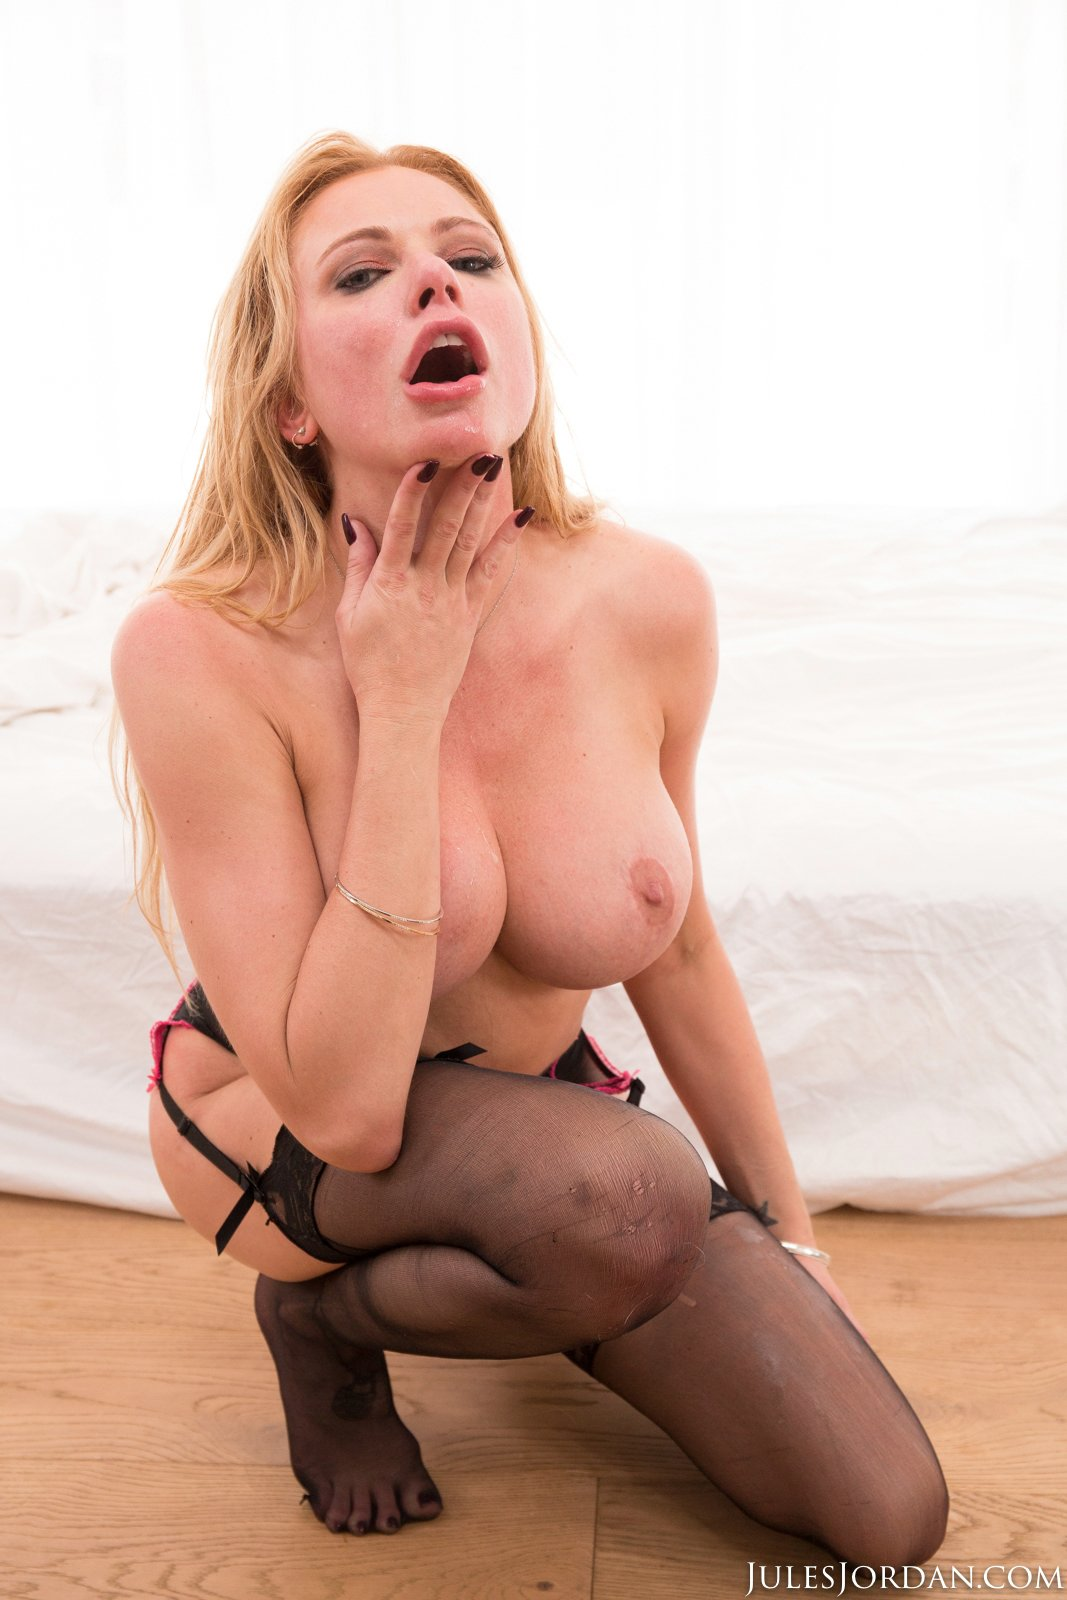 best milf porn stars of all time